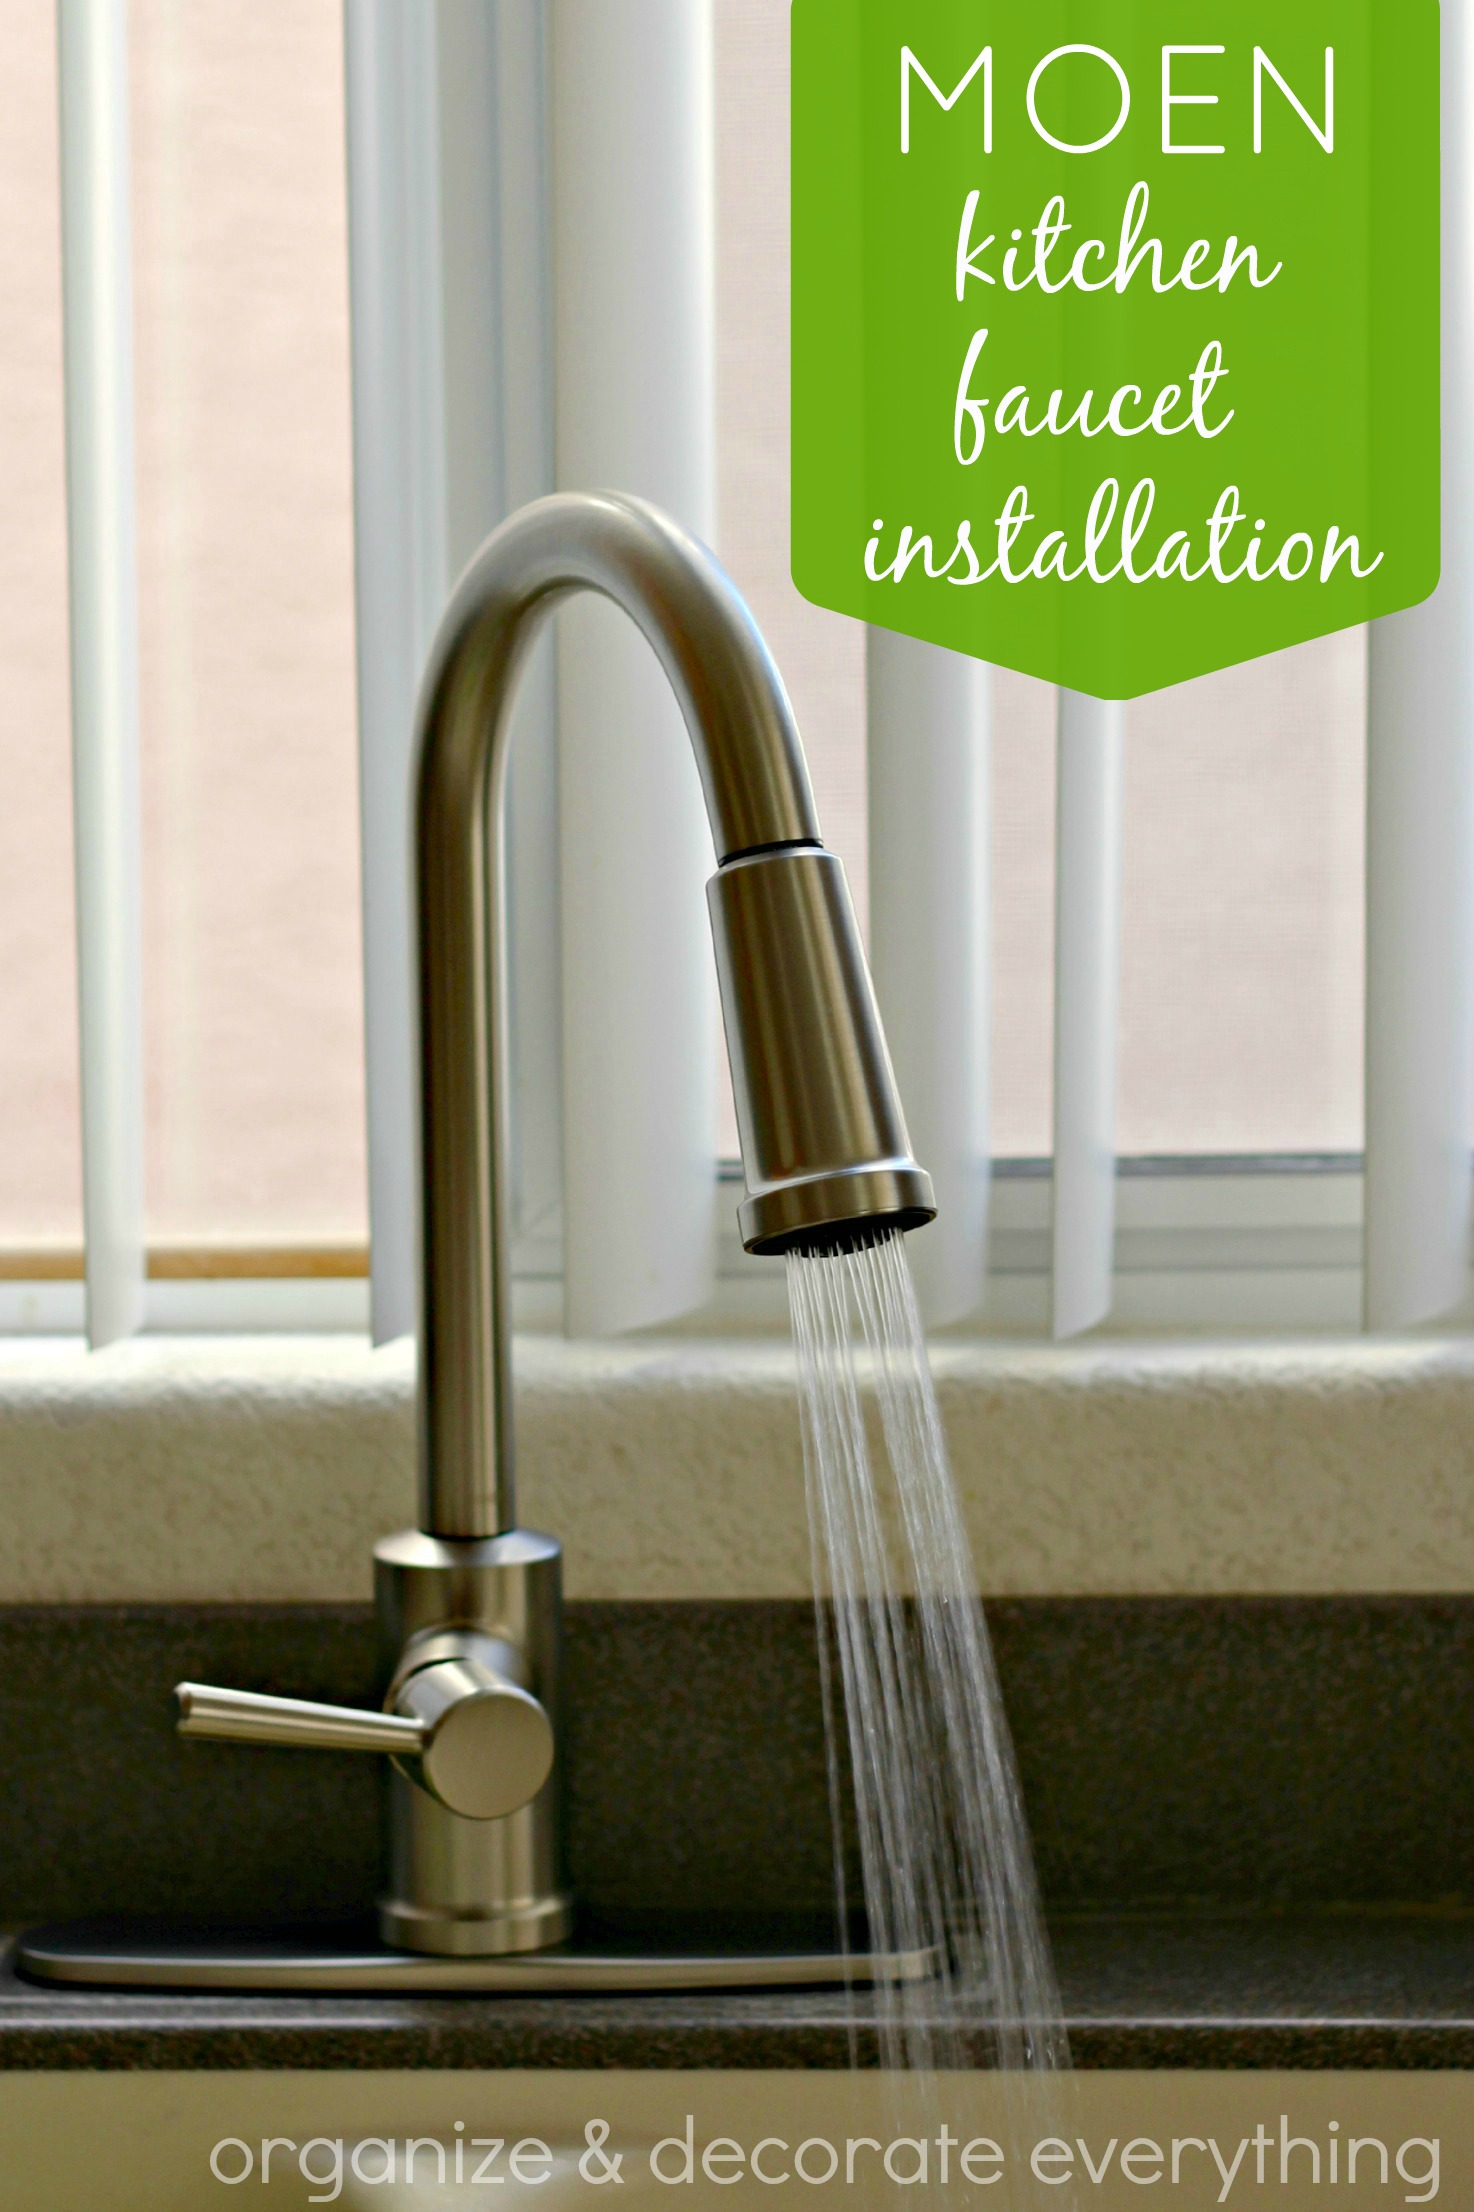 Moen Kitchen Faucet Installation  Organize and Decorate